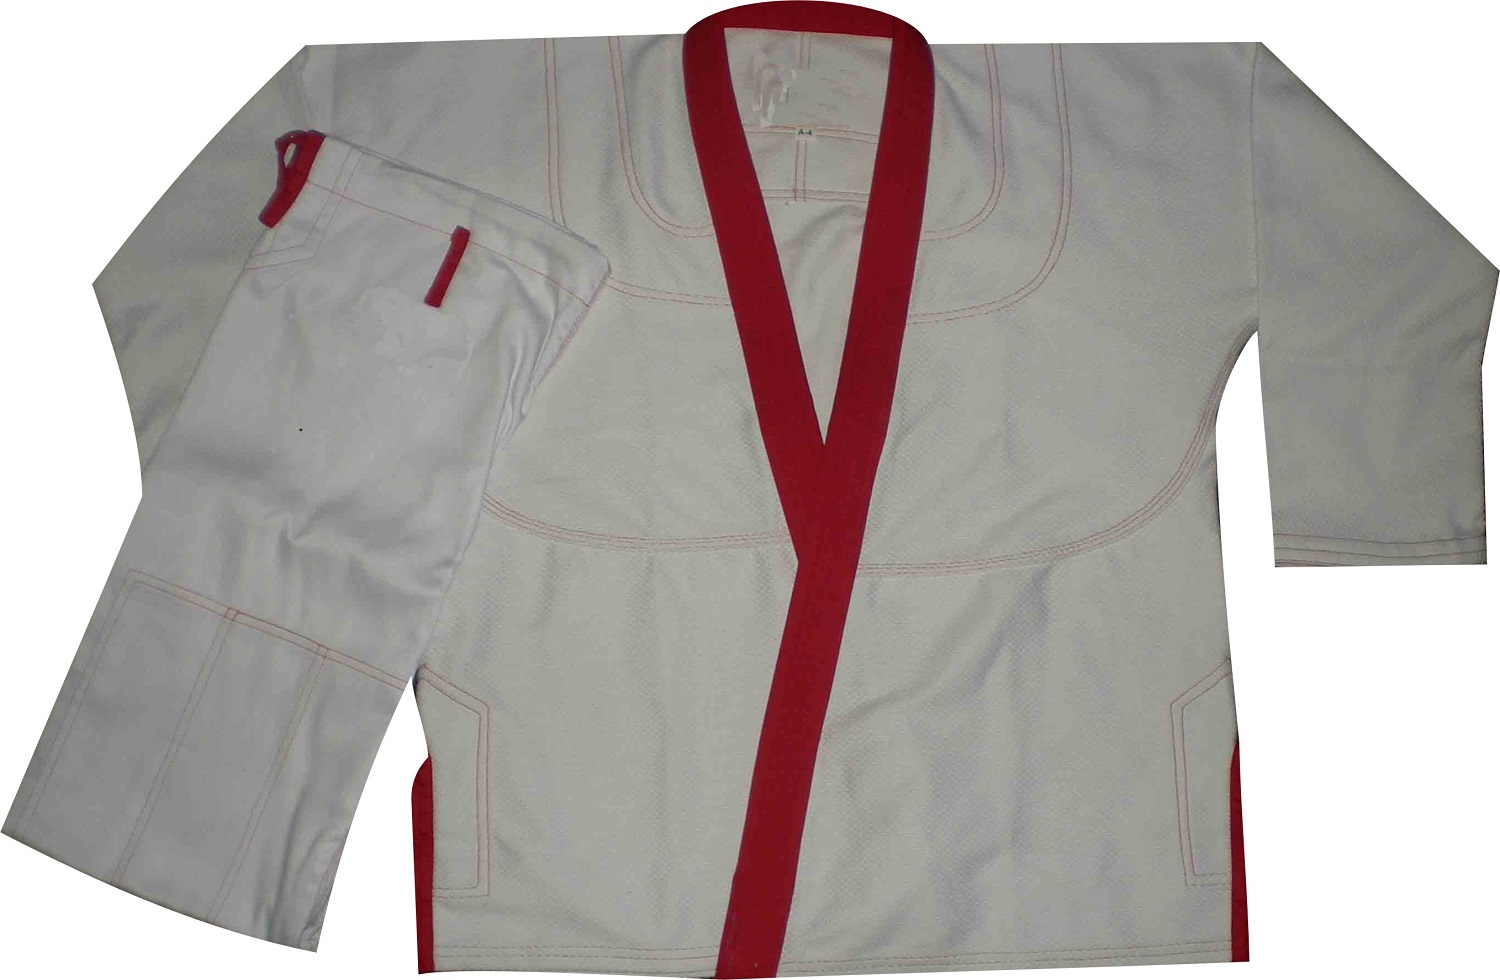 Bjj gi with Red Belt